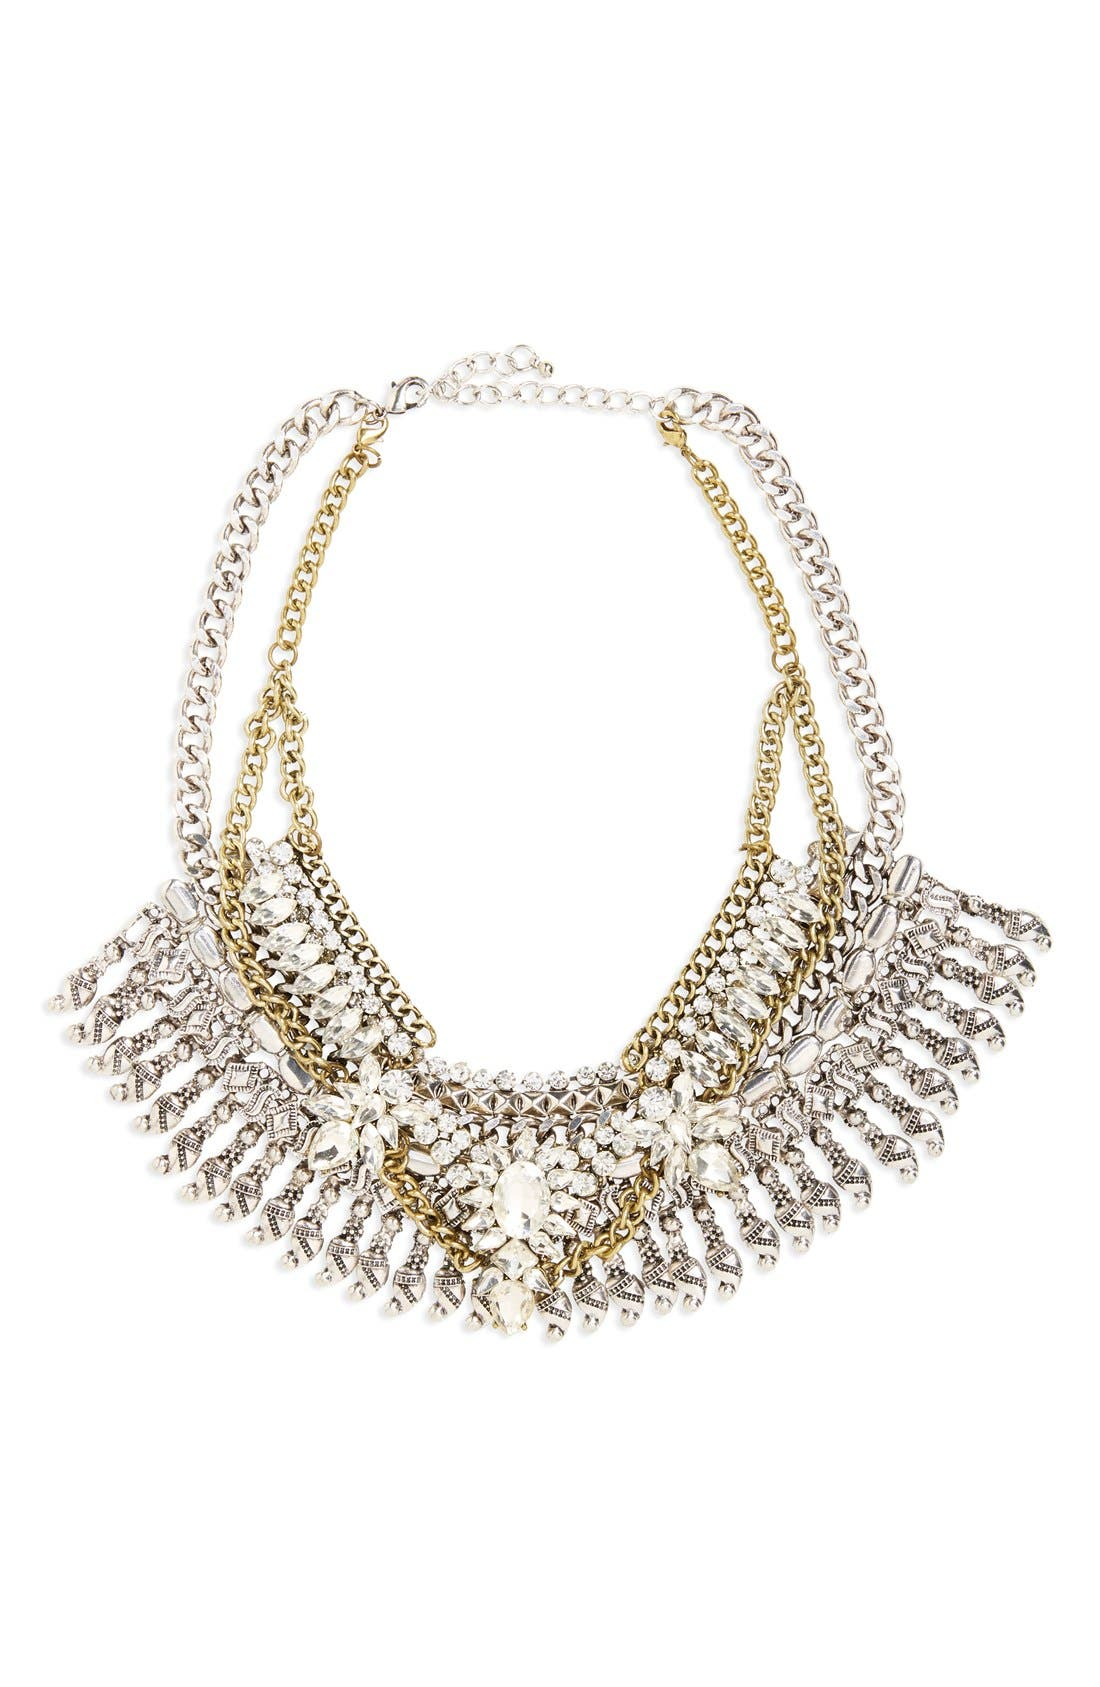 Alternate Image 1 Selected - Leith Crystal & Fringe Layered Statement Necklace